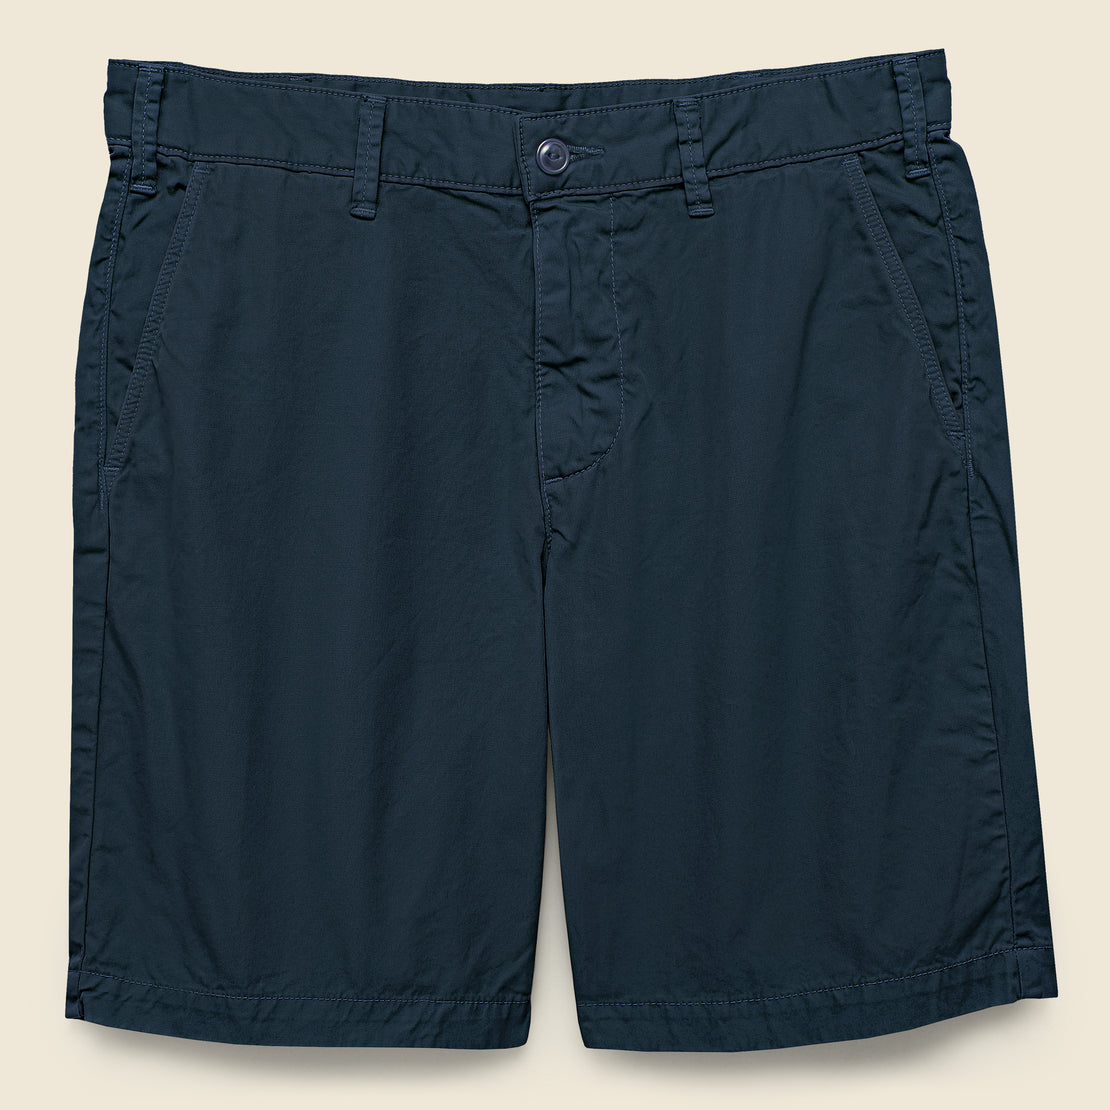 Save Khaki Twill Bermuda Short - Navy